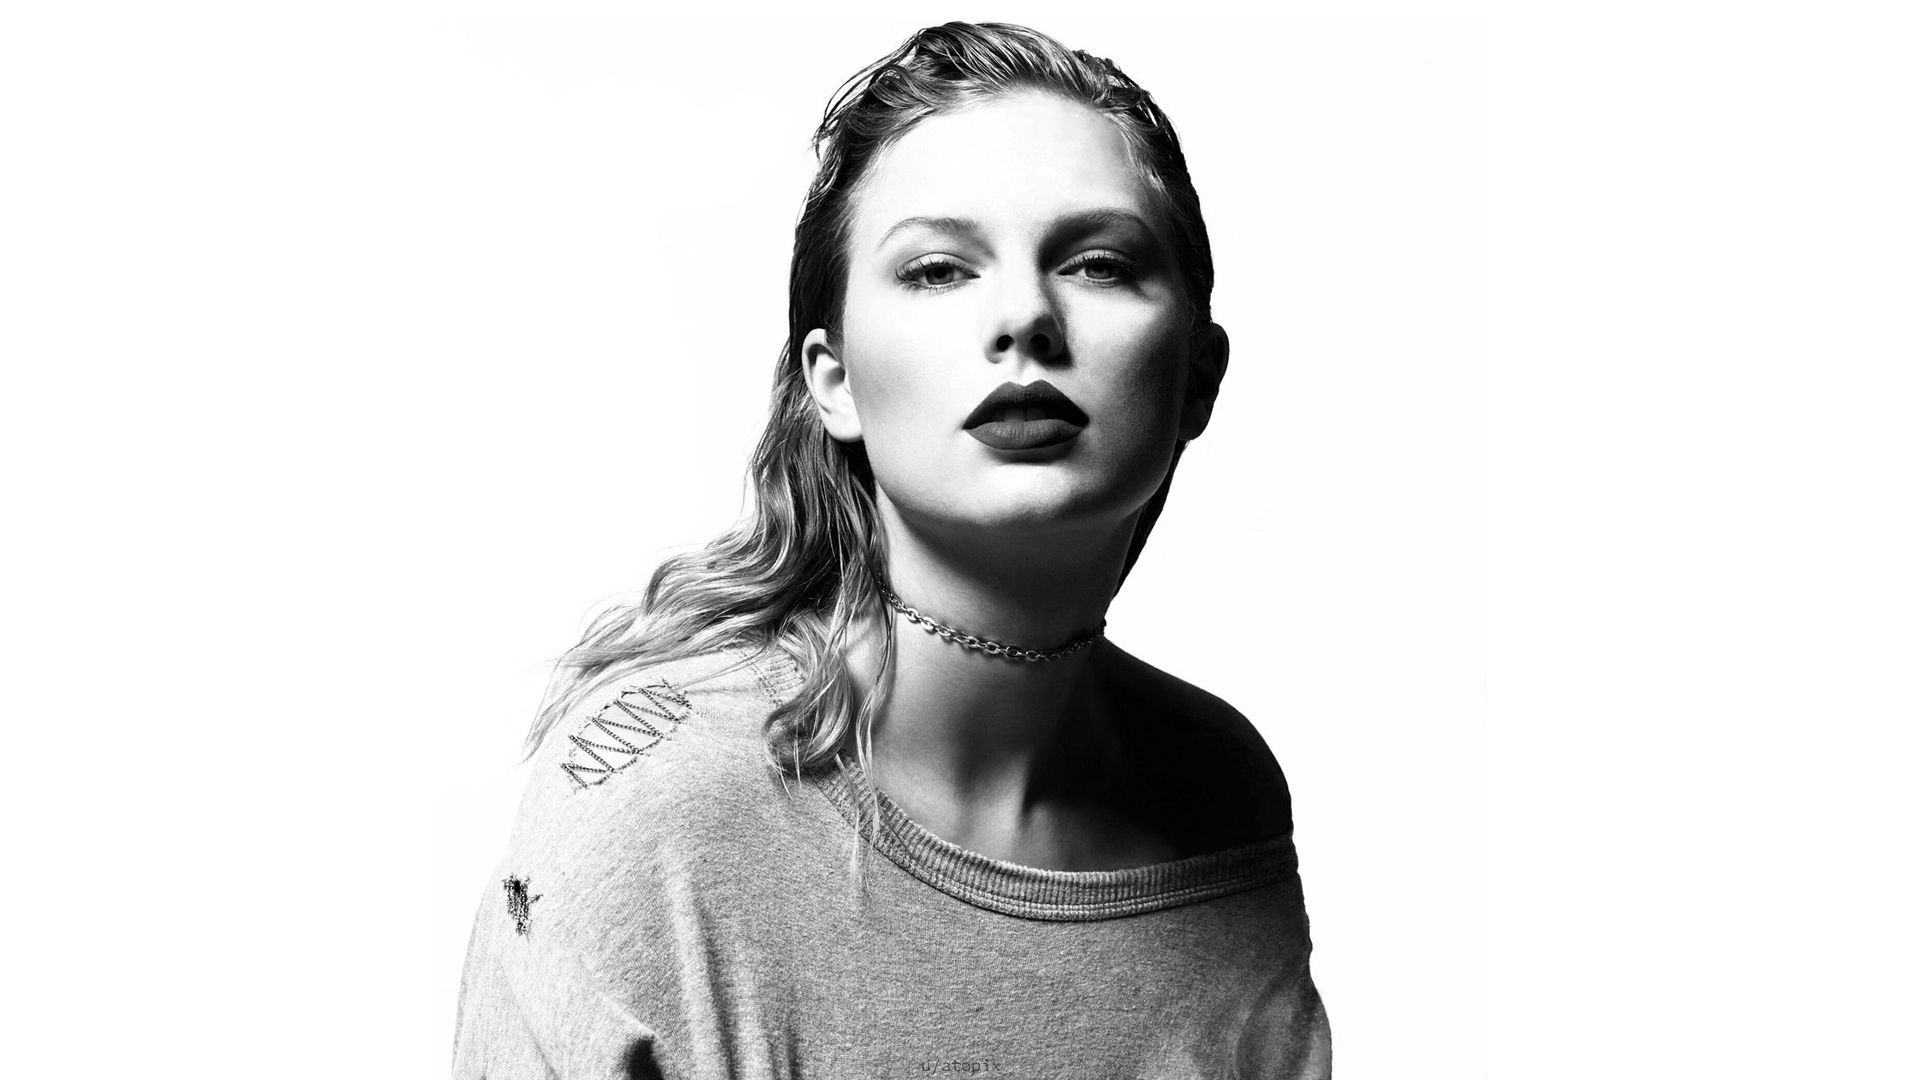 I Made A Ton Of Reputation Desktop Wallpapers In Multiple Colors 1920x1080 Taylor Swift Pictures Taylor Swift Repuation Taylor Swift